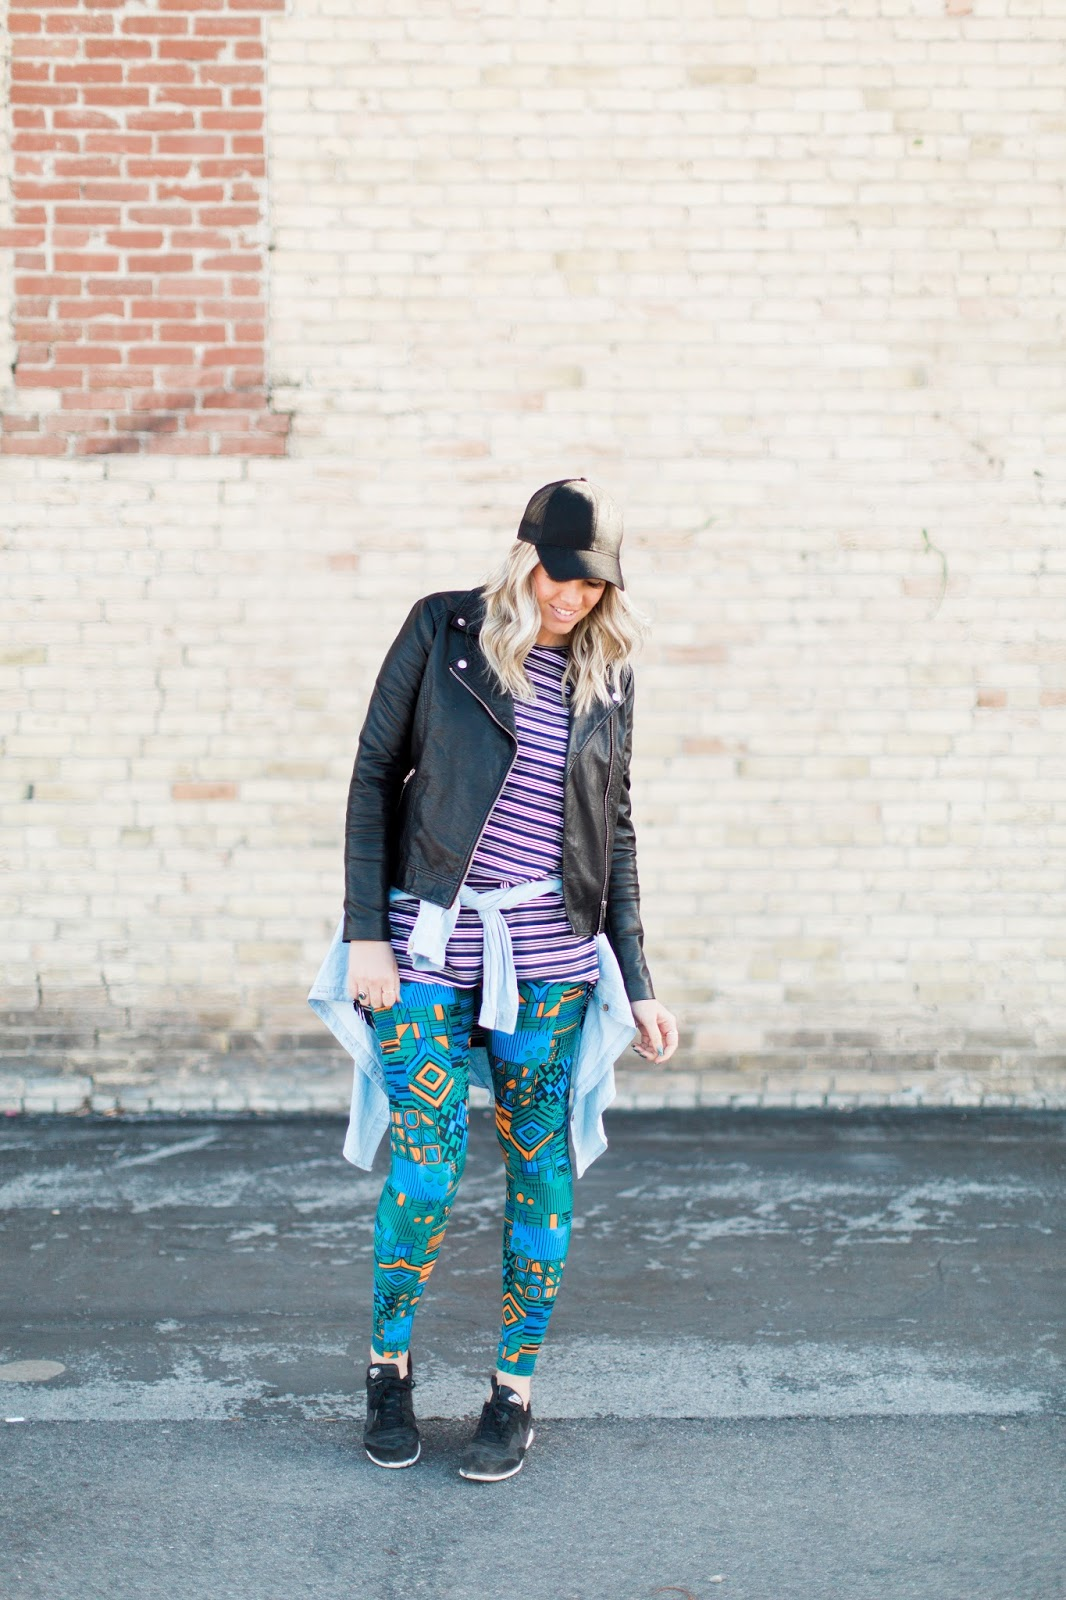 Lularoe Shirt, Lularoe Leggings, Utah Fashion Blogger